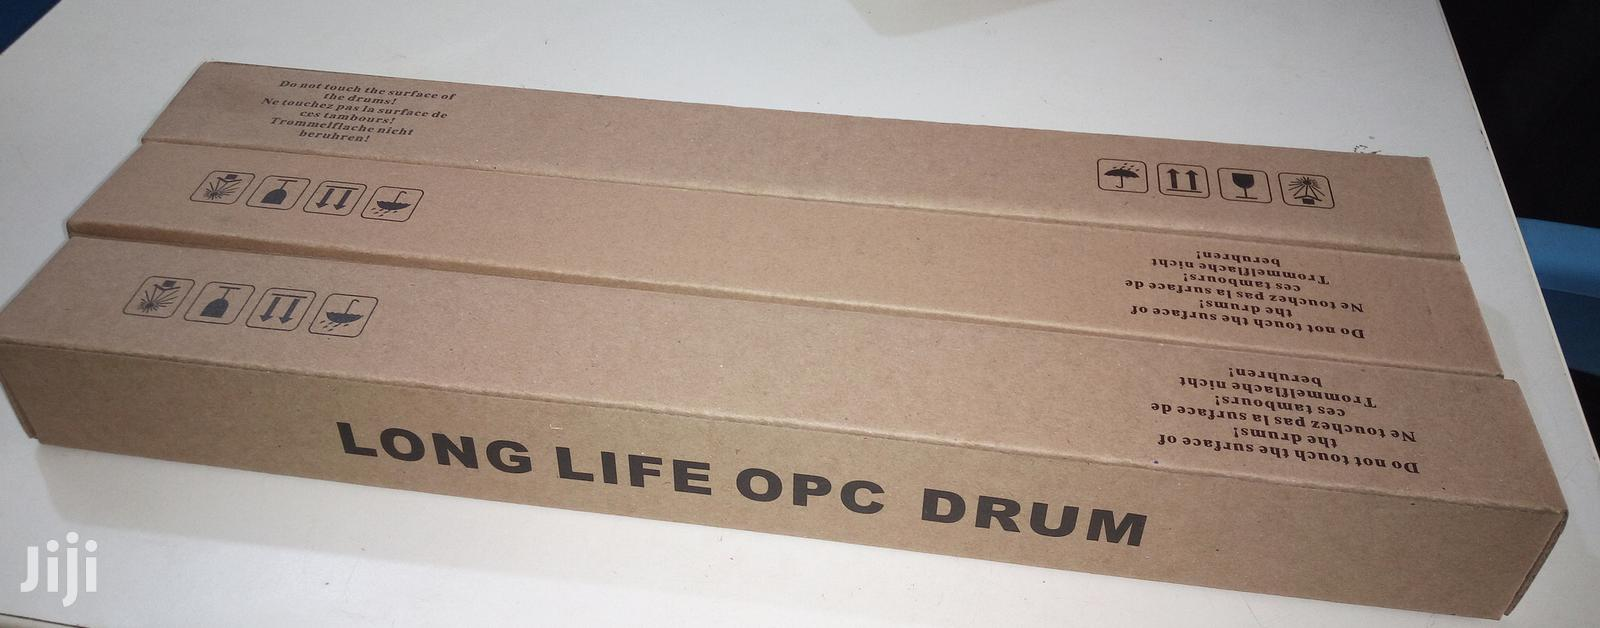 Quality Opc Drums And Blades For CANON Advance Printers